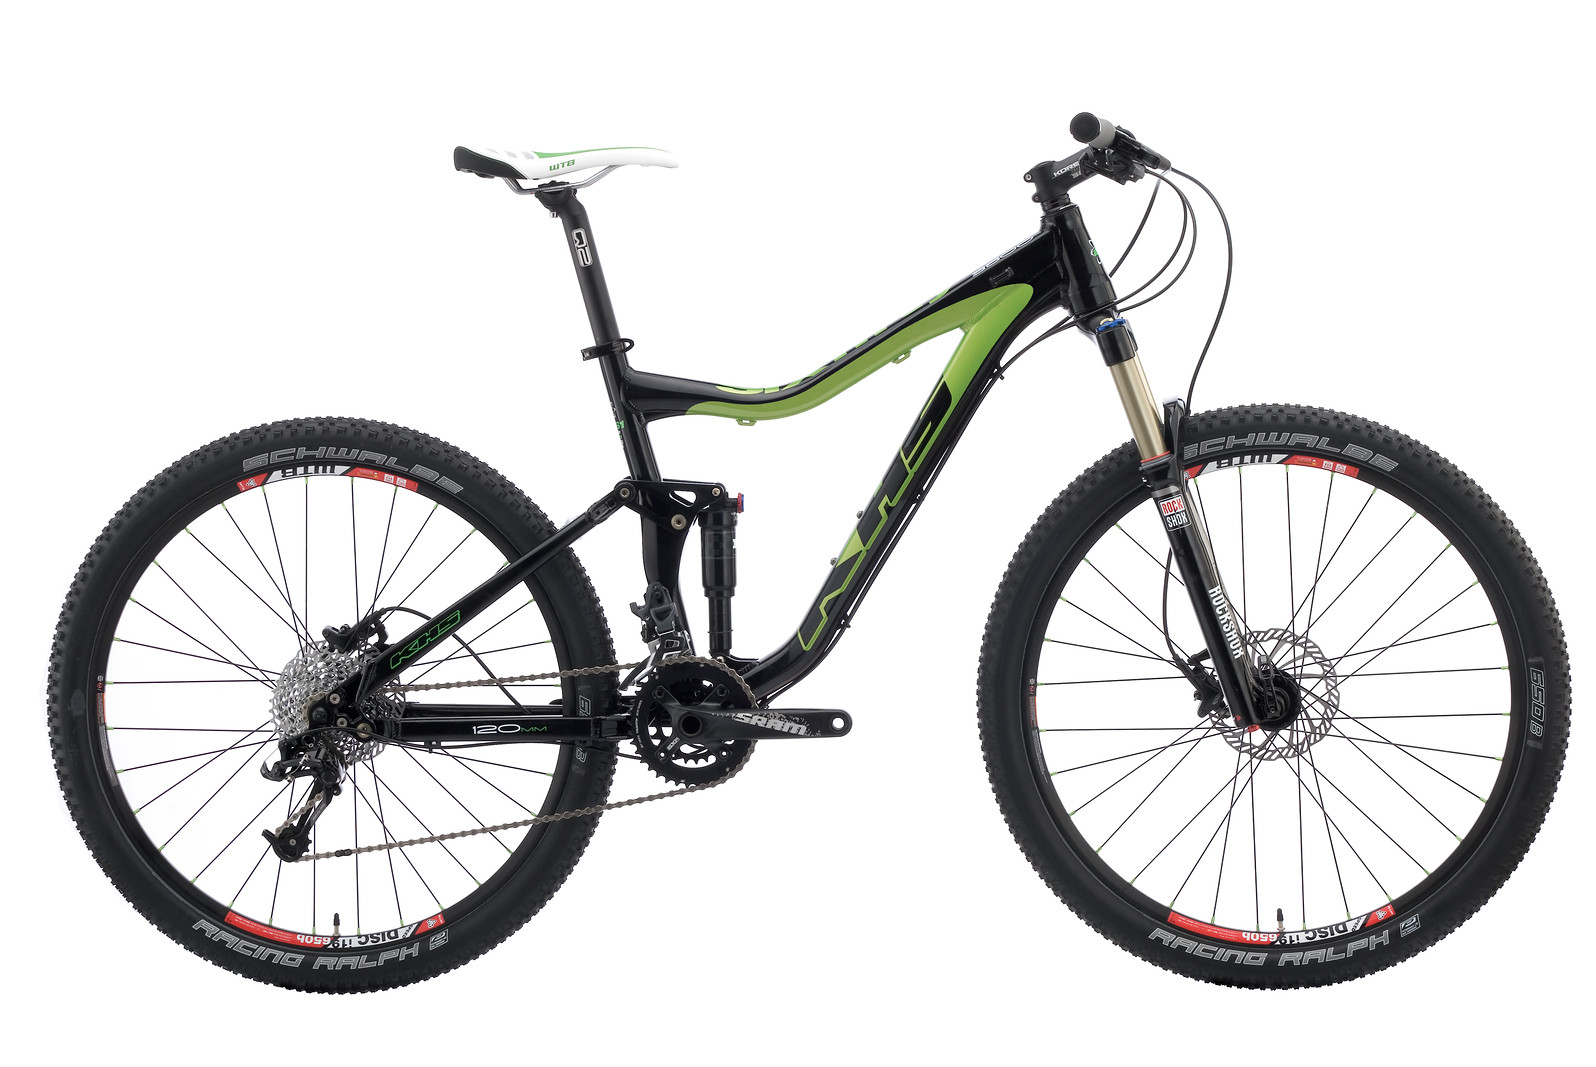 2013 KHS SixFifty 3500 Bike 2013 SixFifty 3500